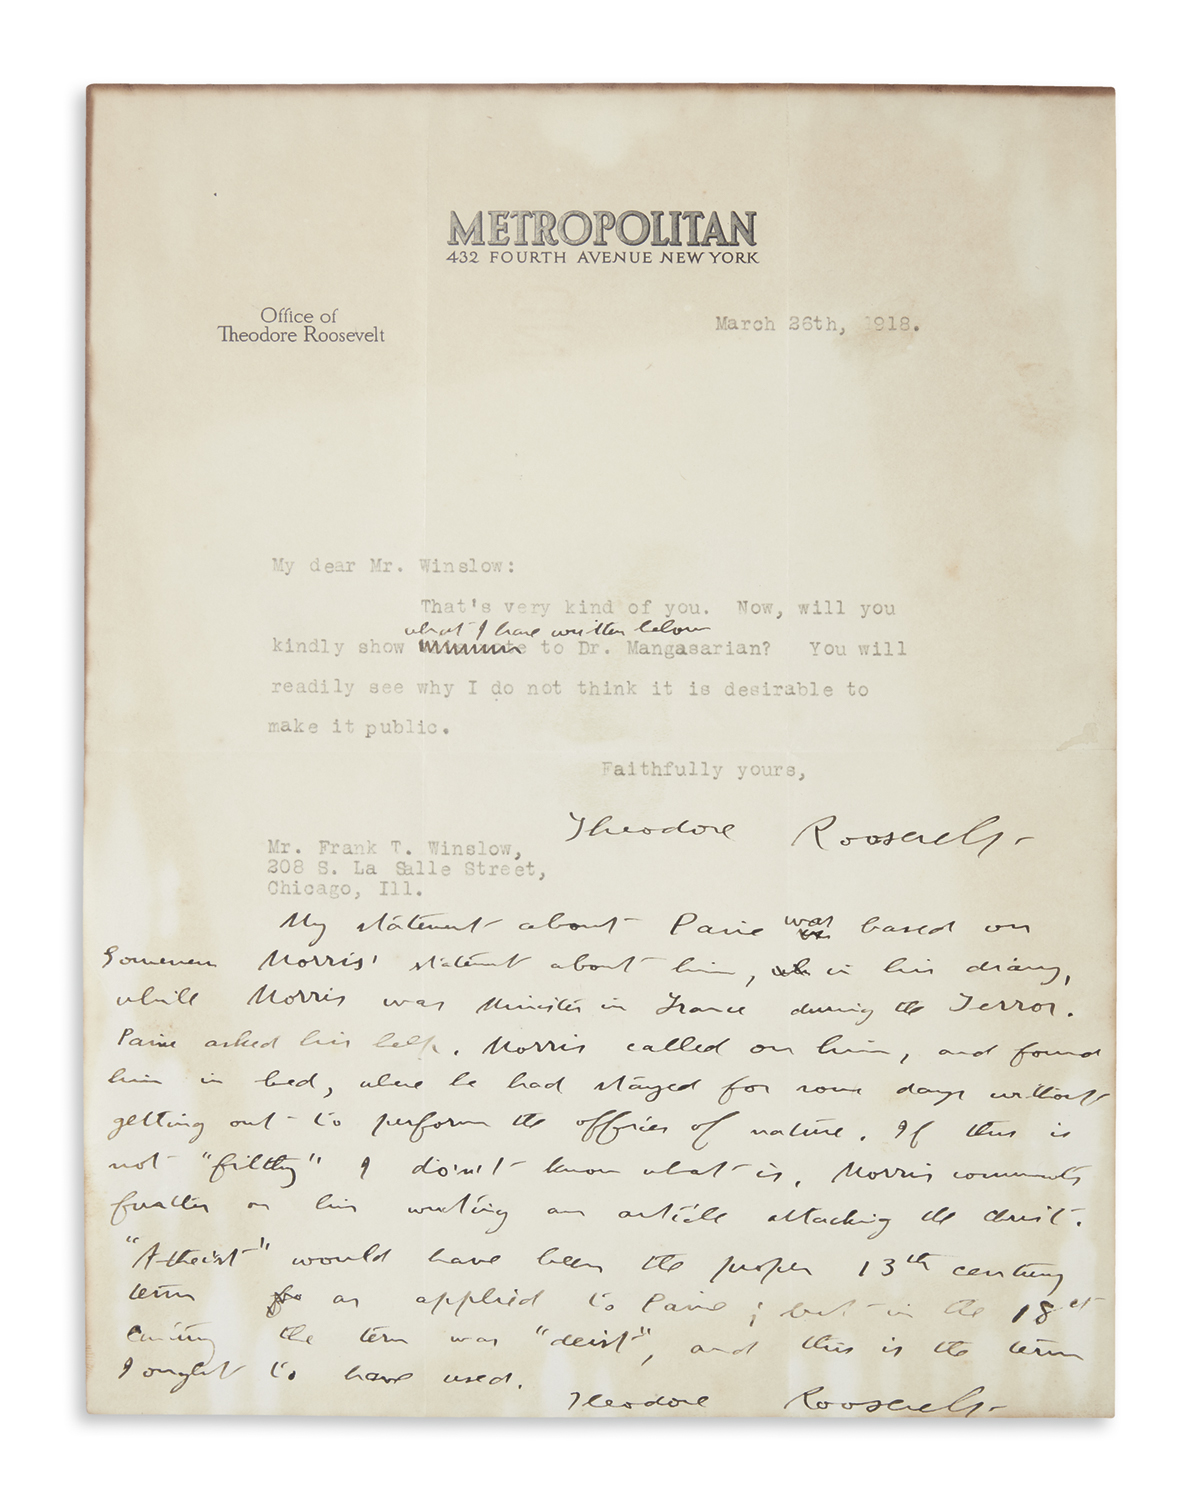 ROOSEVELT, THEODORE. Typed Letter Signed, with a 12-line Autograph Postscript Signed, to Frank T. Winslow (My dear Mr. Winslow),